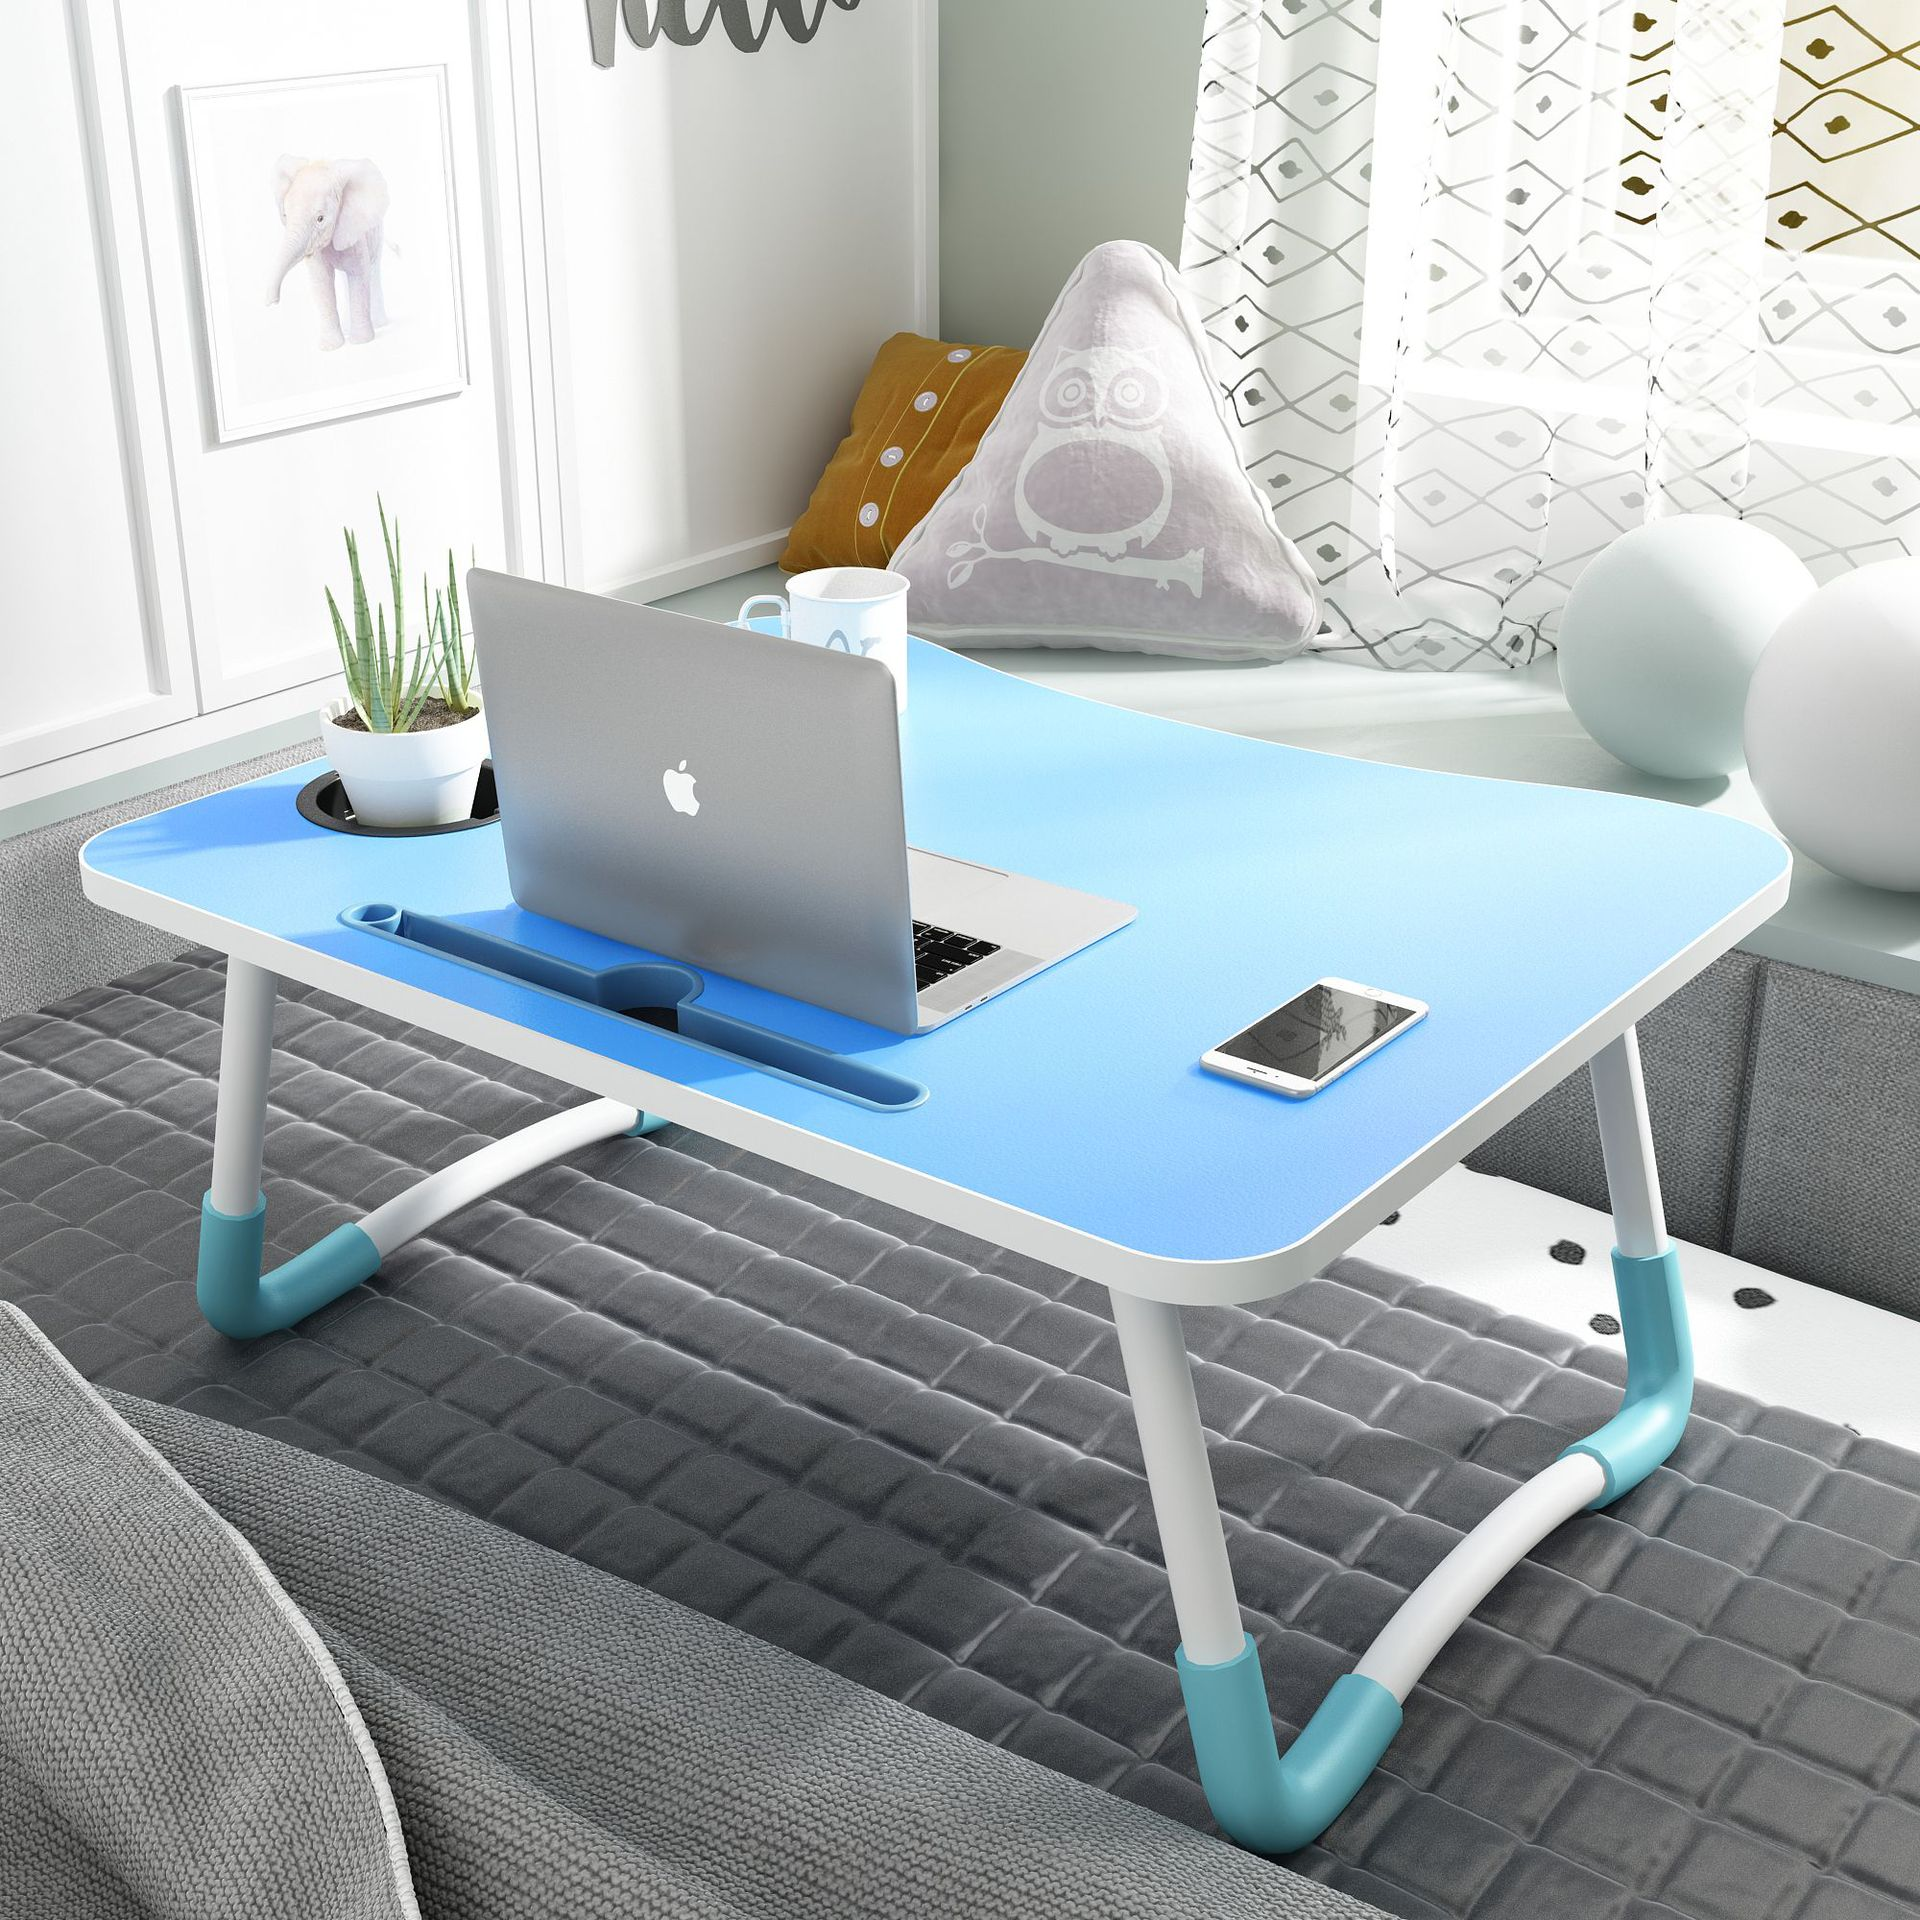 Mobile Phone Card Slot W Leg Laptop Table Bed Desk Computer Desk Simple Anti-slip Small Table A Generation Of Fat